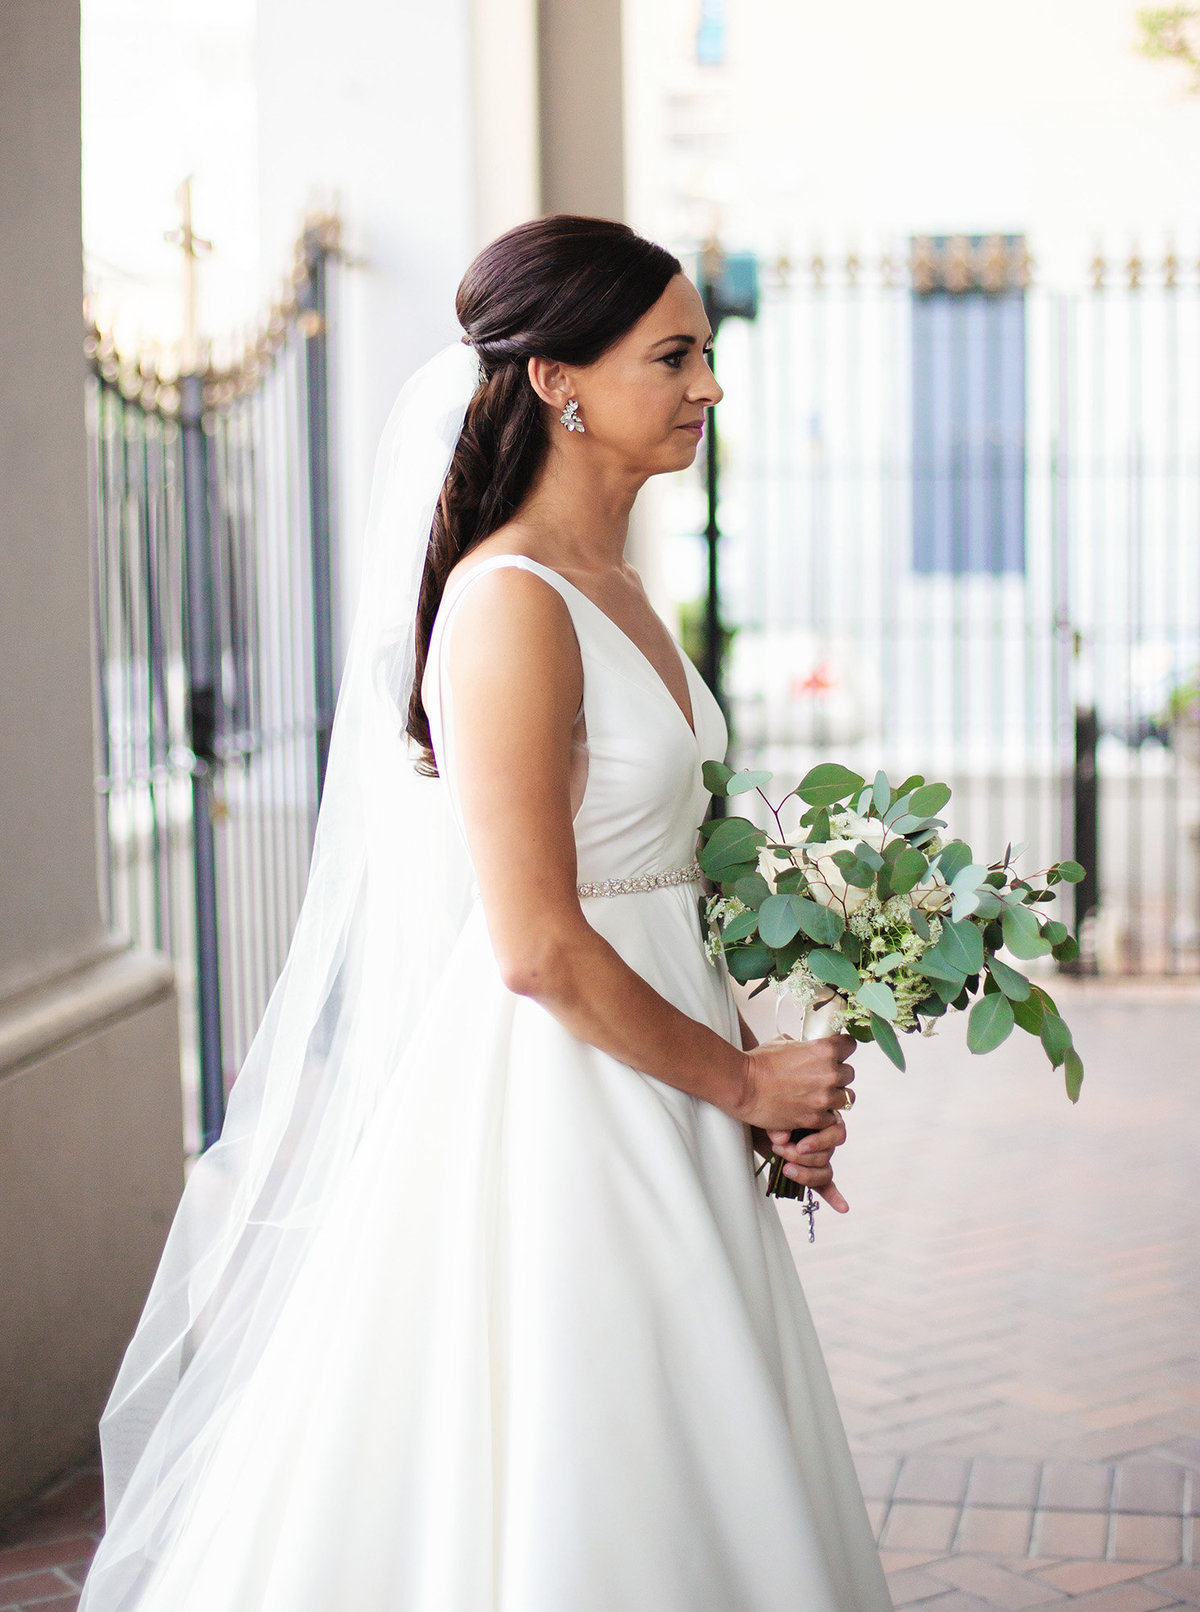 bride-waiting-to-walk-down-the-aisle